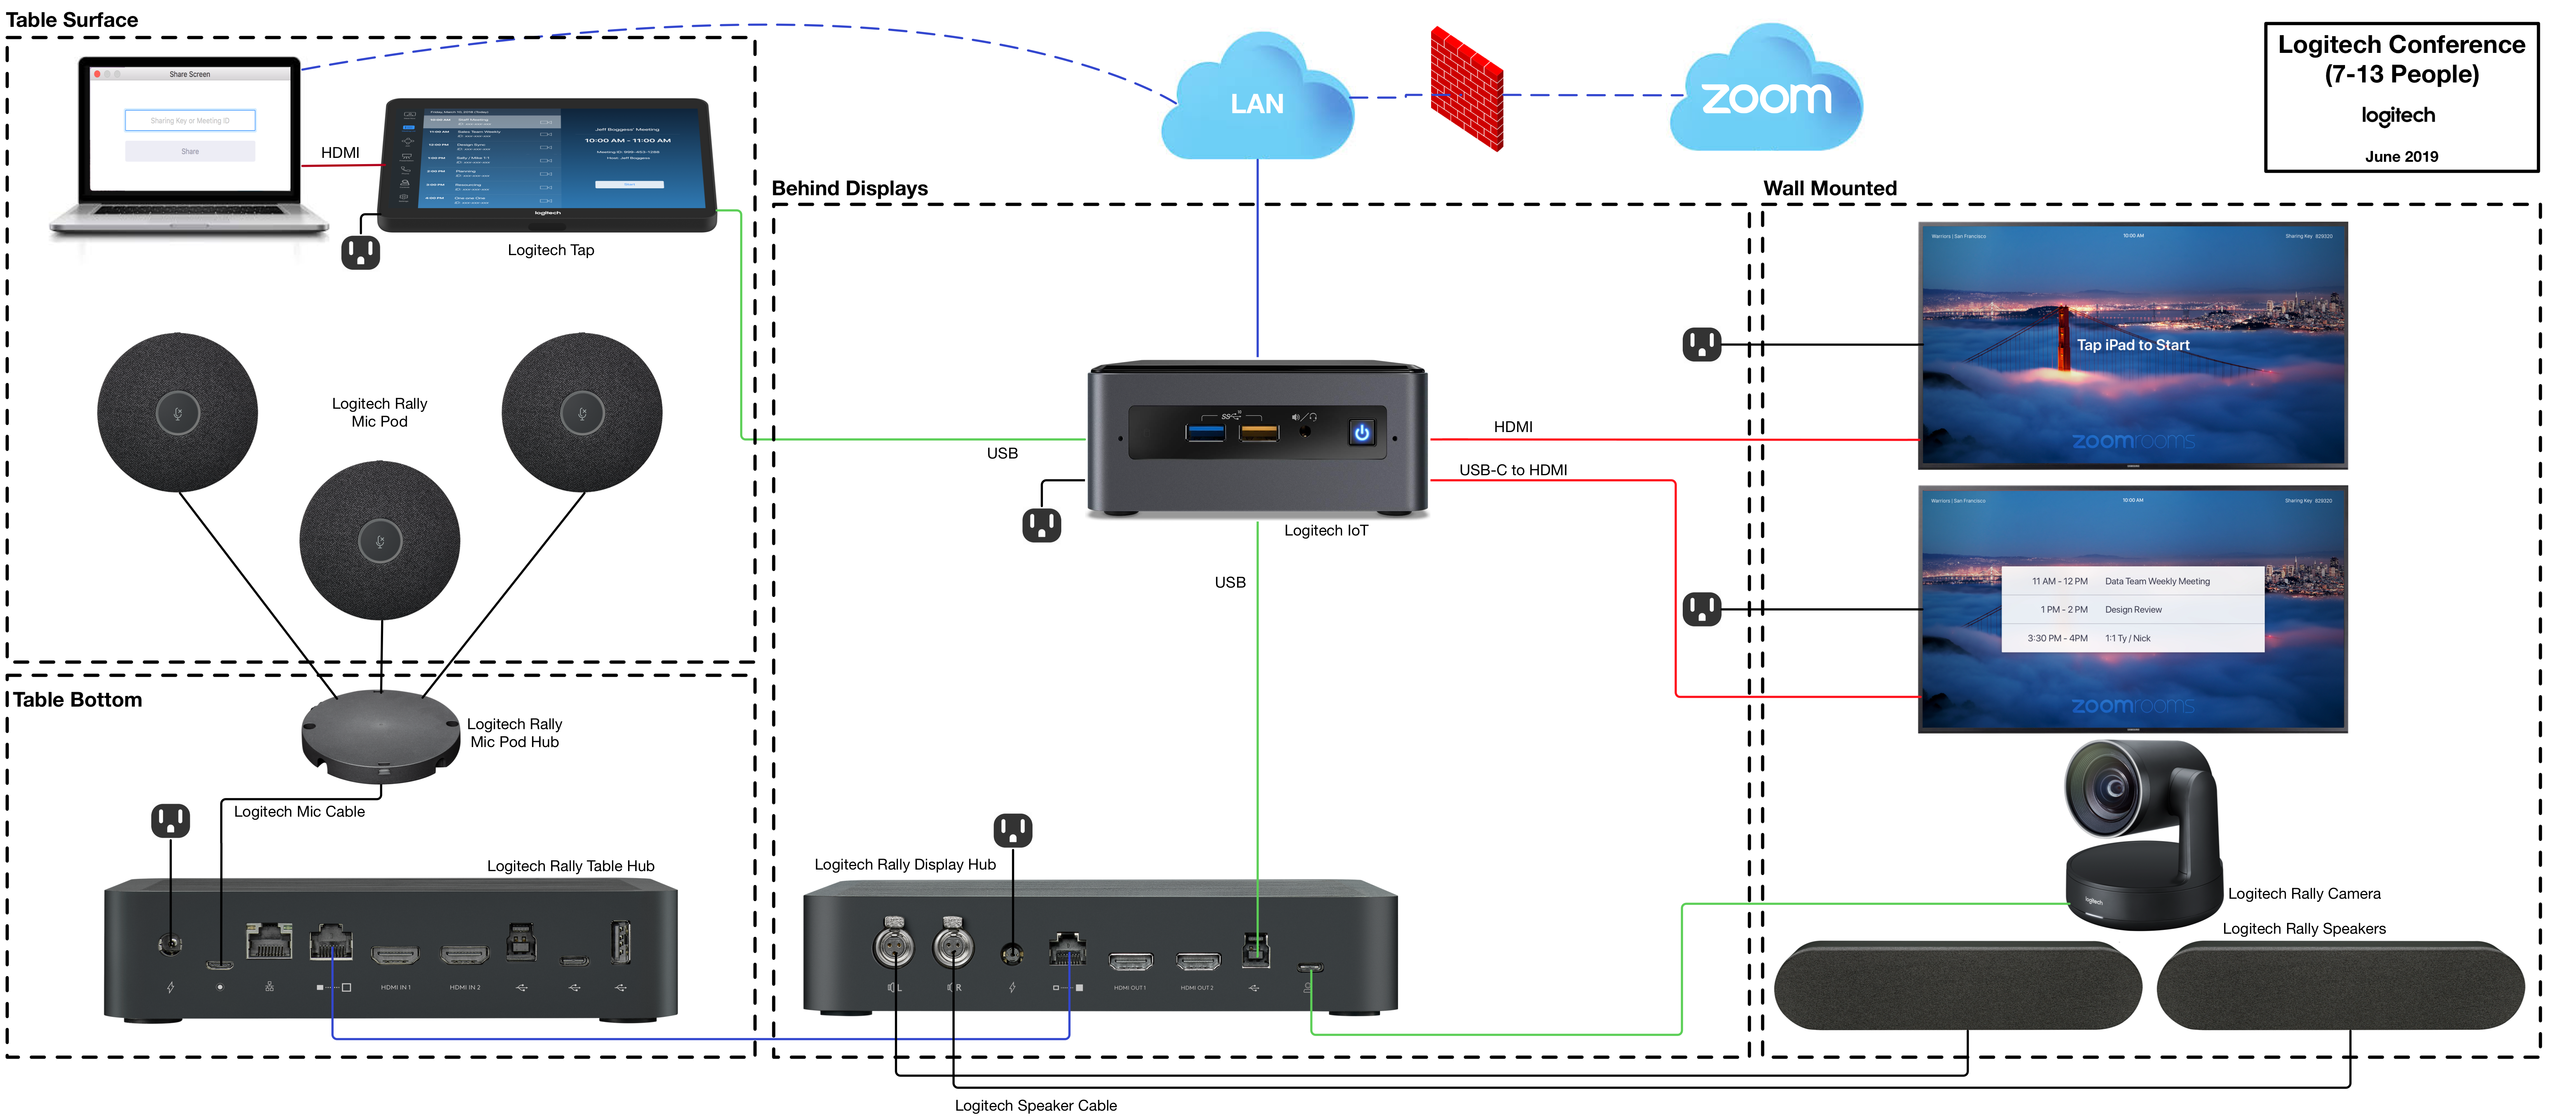 Logitech__TAP__-_Pictorial_Schematic_-_Zoom_Rooms__7-13_People_.png